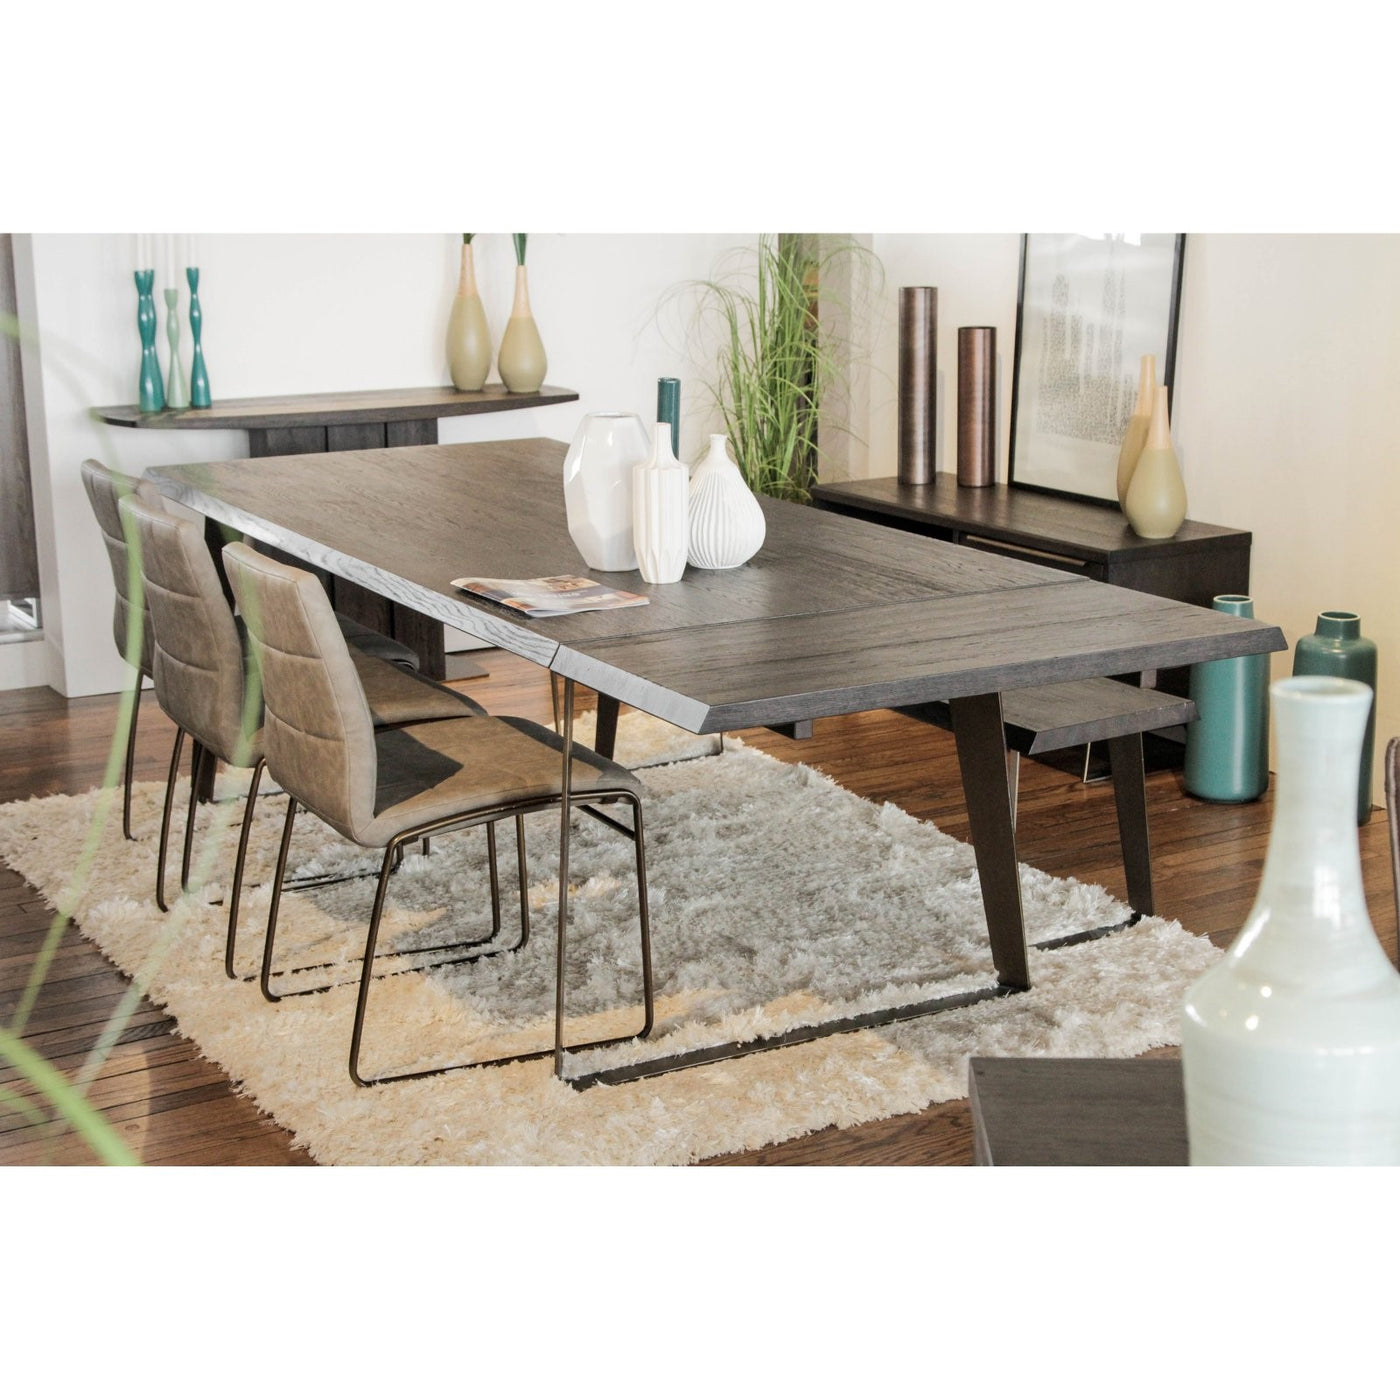 Unique Furniture Novara Dining Table * (CURRENTLY ON SHOWROOM FLOOR)